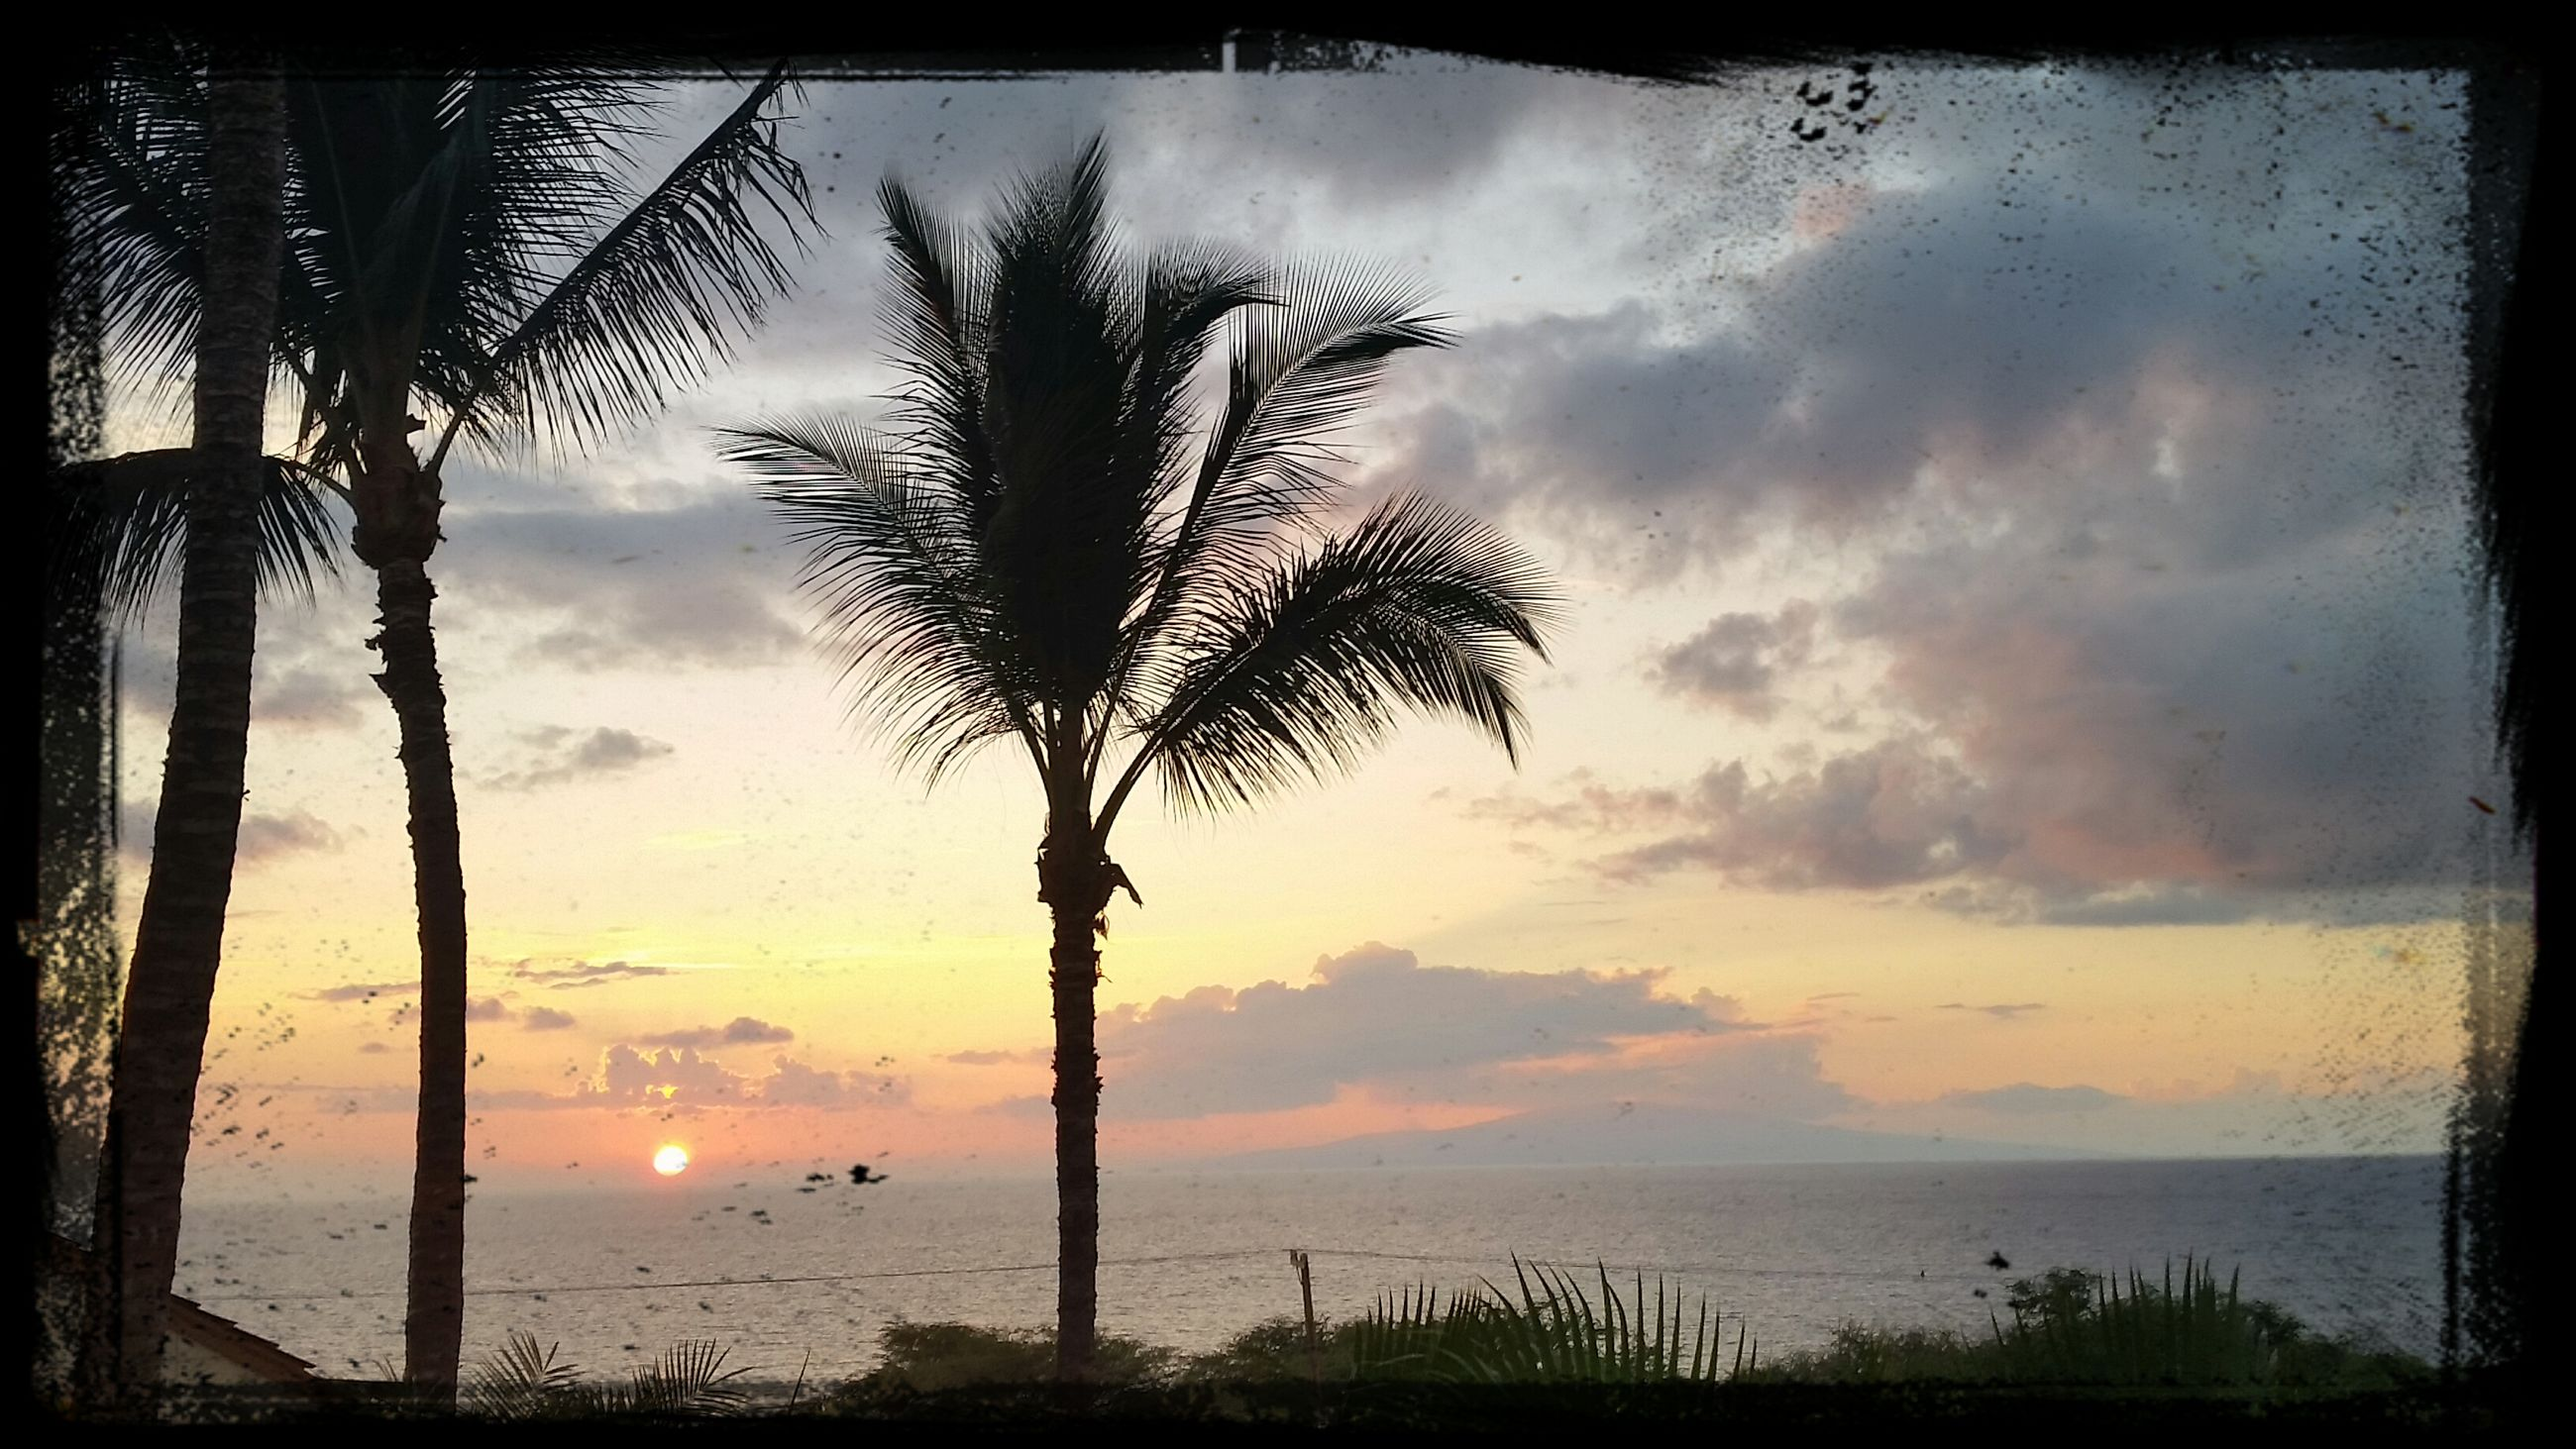 sky, sunset, tranquility, tranquil scene, scenics, tree, silhouette, beauty in nature, cloud - sky, water, nature, tree trunk, sea, transfer print, horizon over water, idyllic, palm tree, cloudy, cloud, auto post production filter